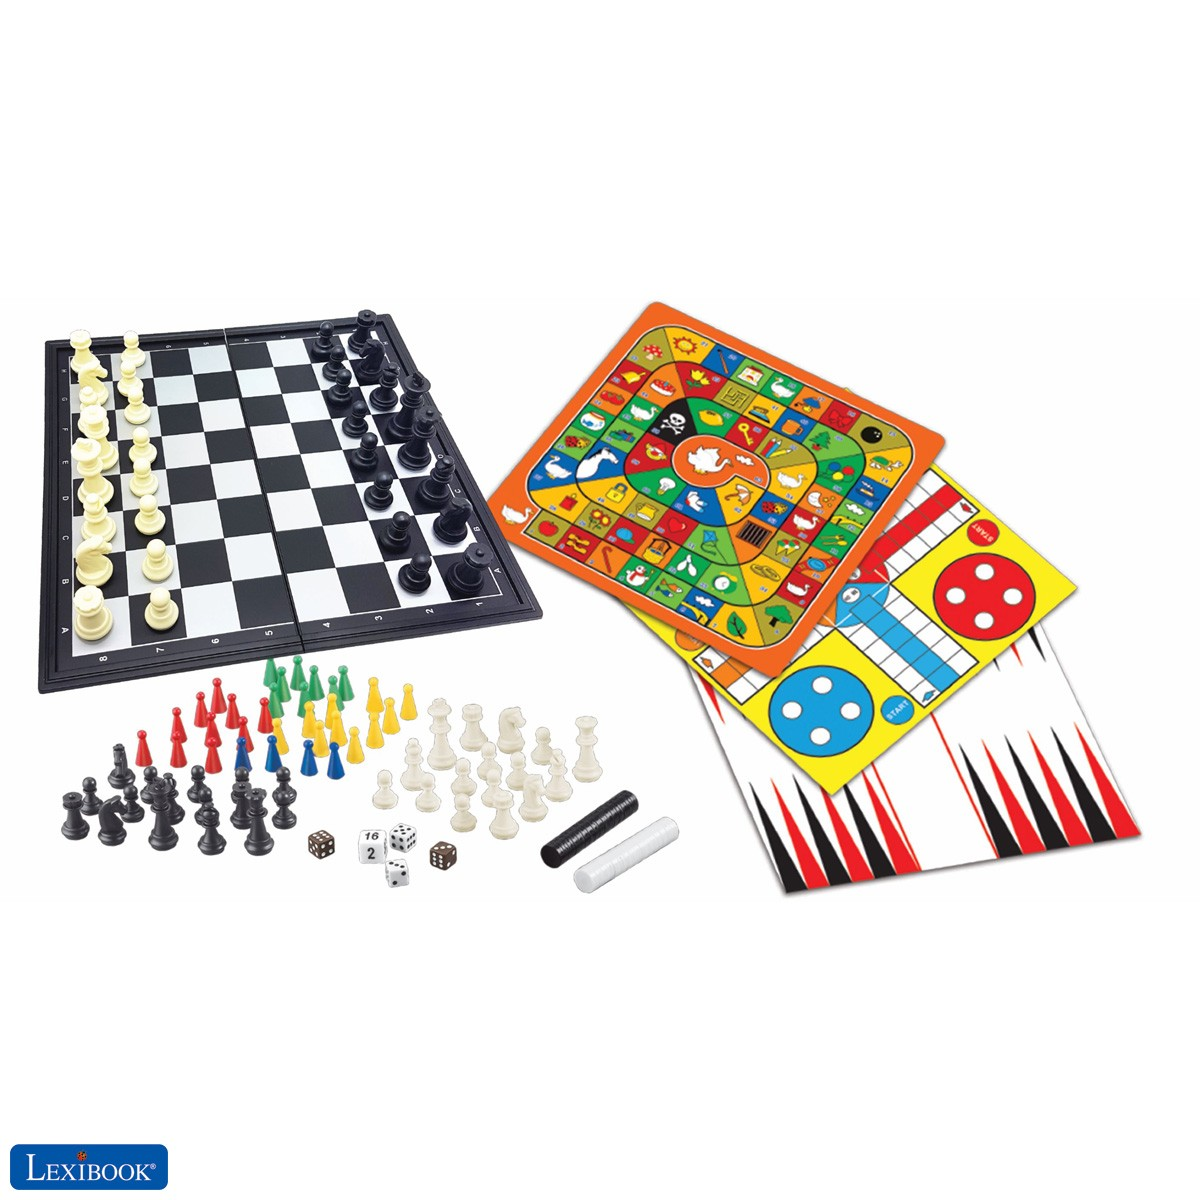 8-in-1 games set, Chess